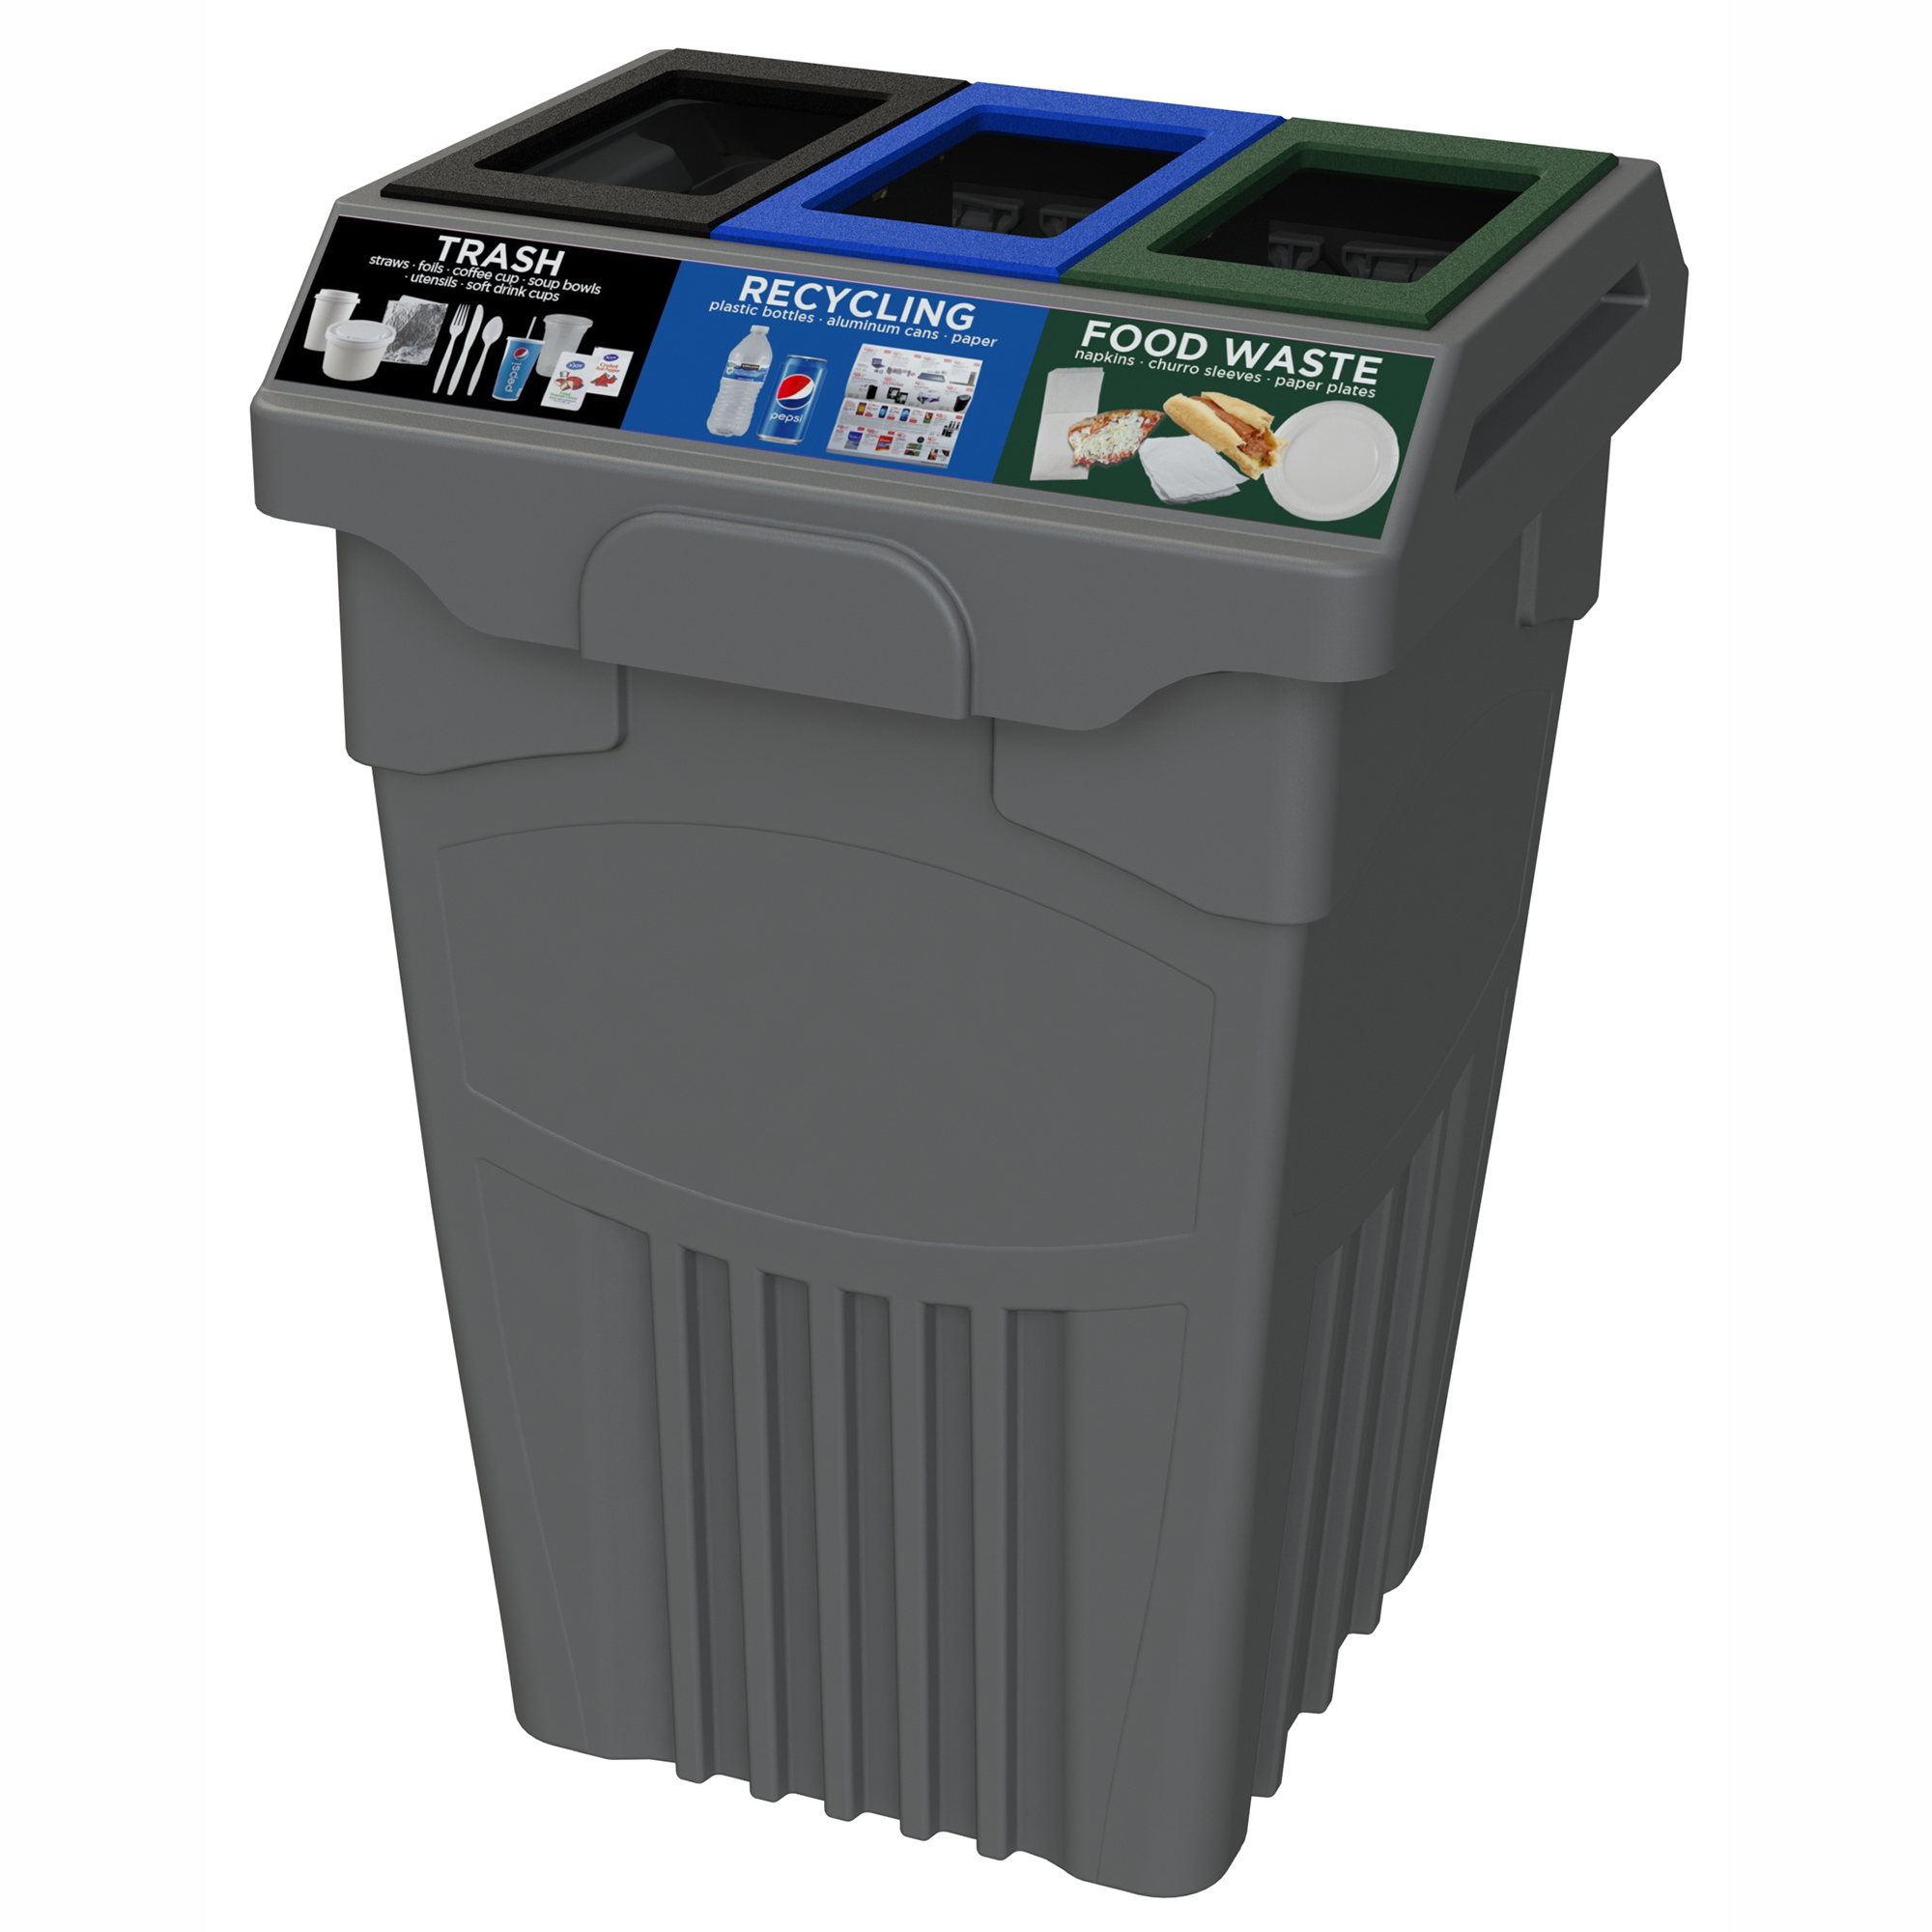 Costco TPM 45 Gallon Recycling Container - CleanRiver